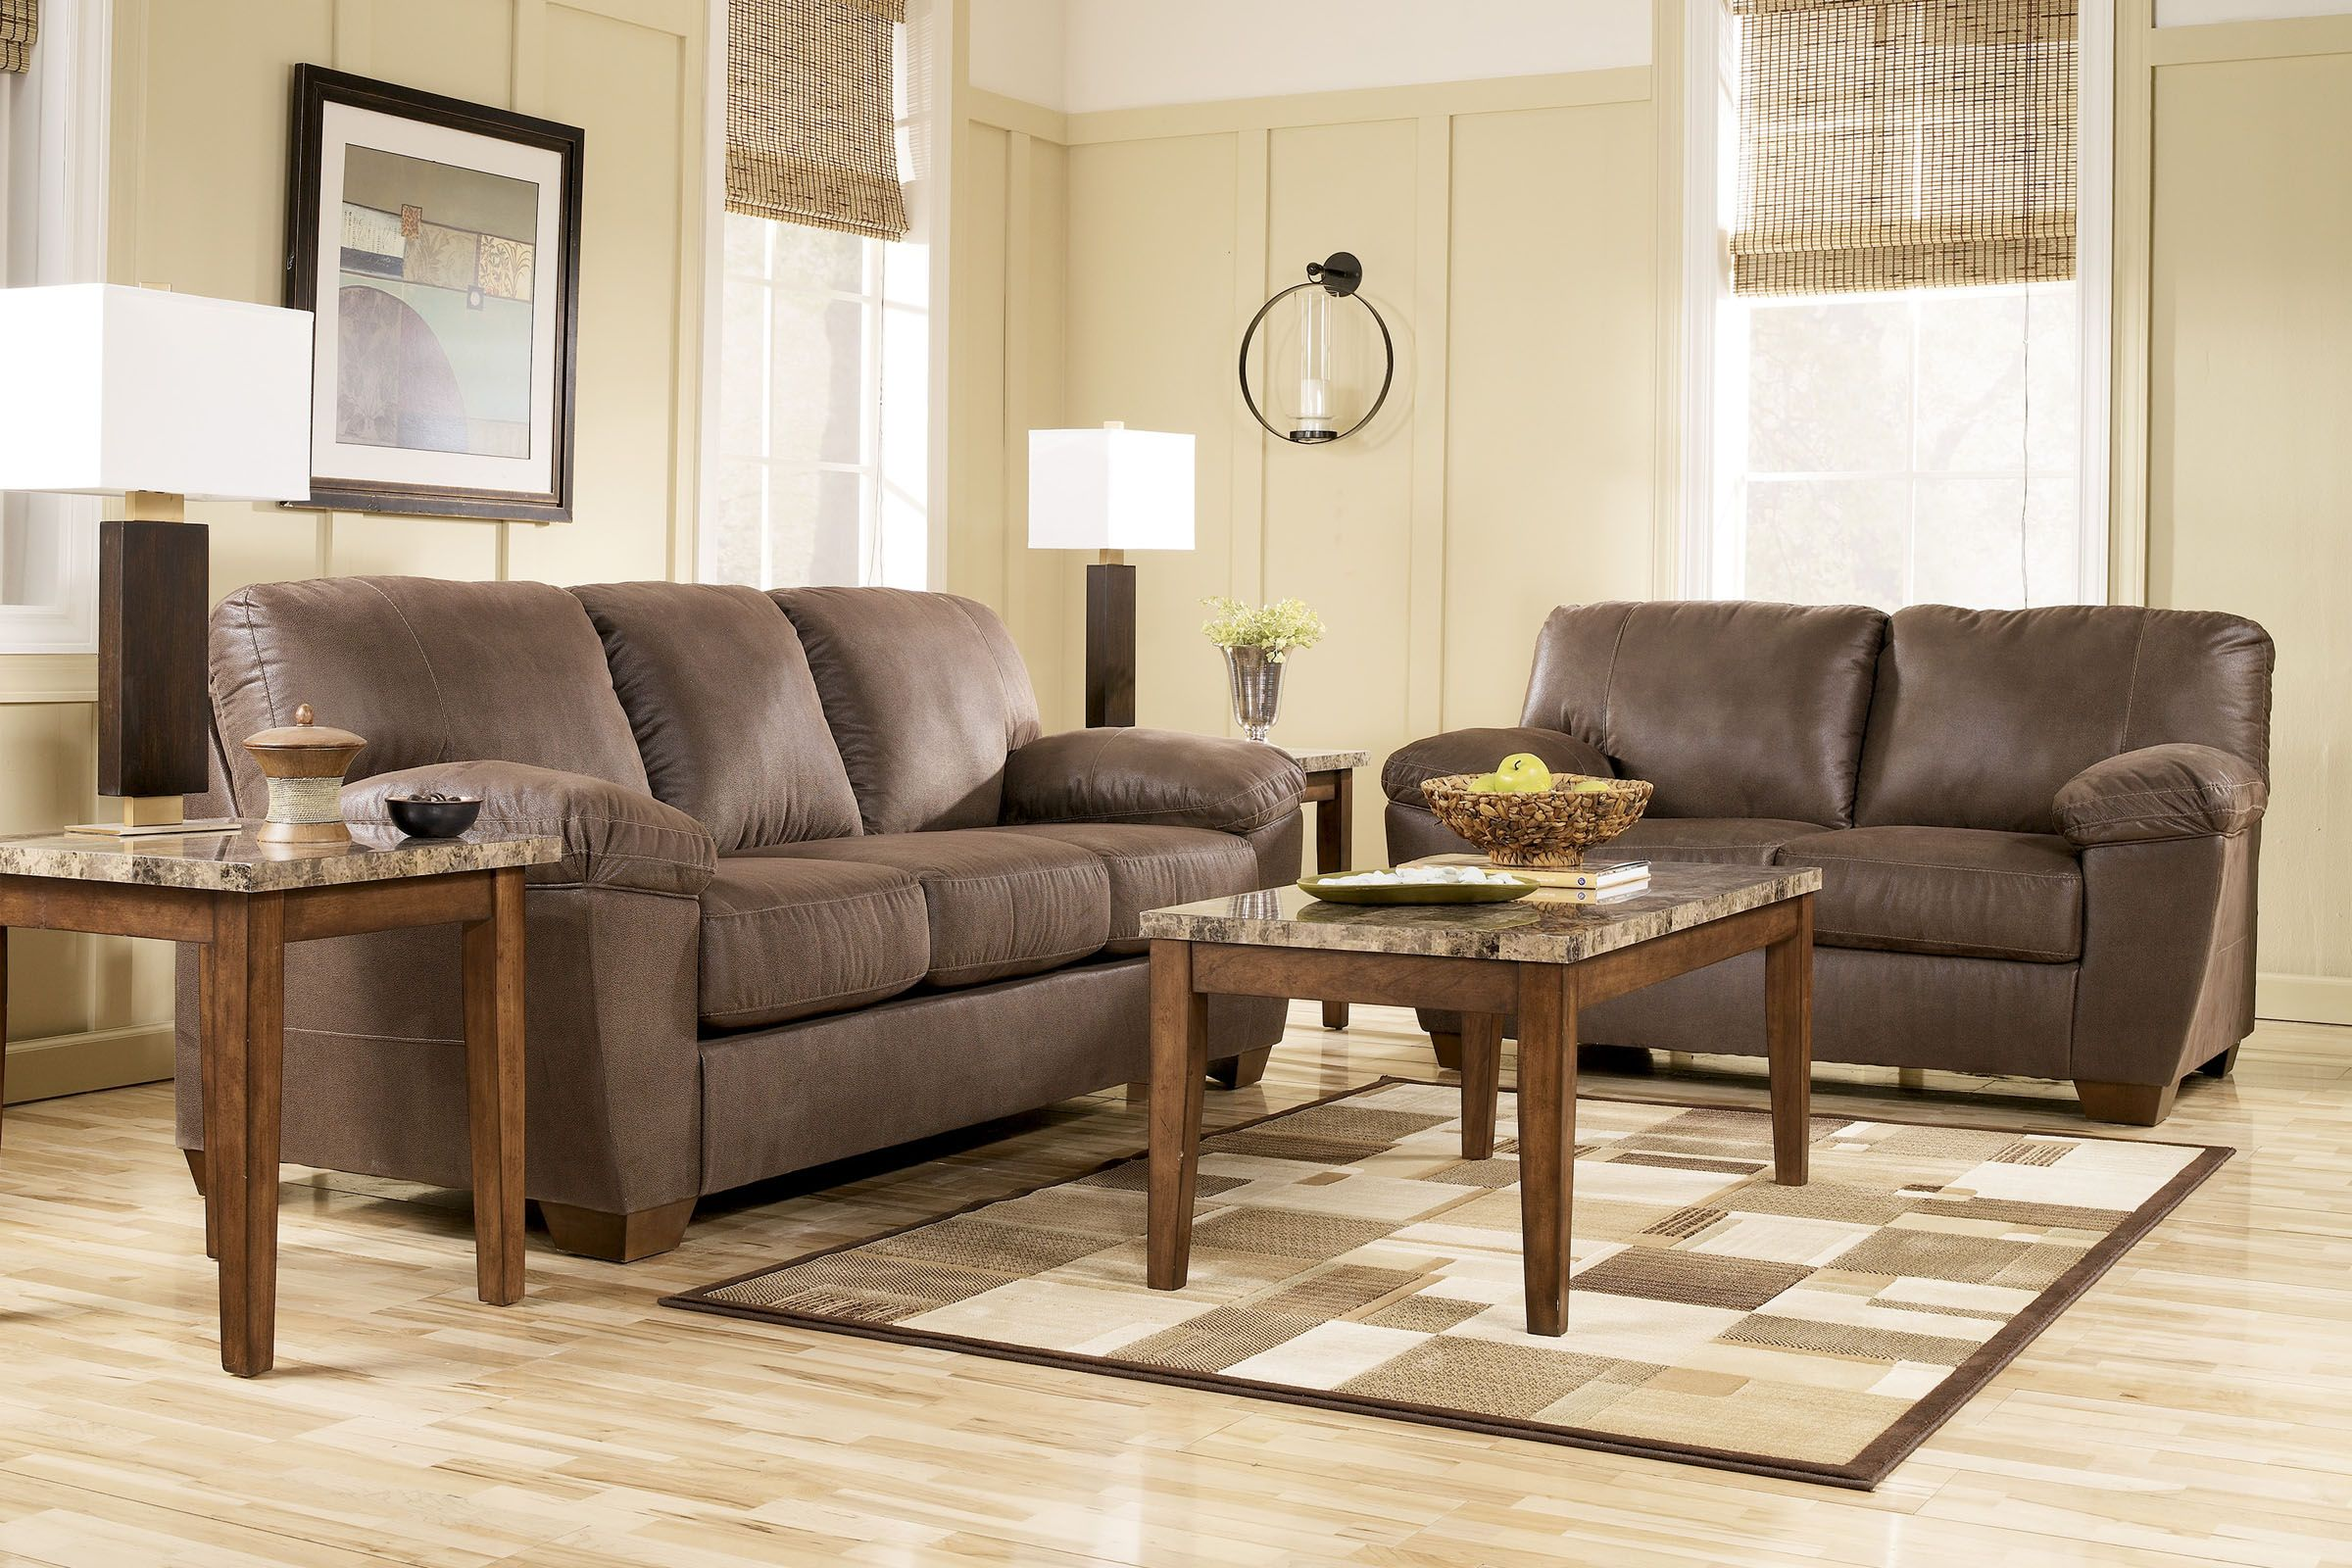 sofa   loveseat   3 tables amazon 5 piece big picture package with 55   sharp 4k ultra hd tv now  2199 99  1759 99   we pay your tax living room furniture with extras  rh   gardner white